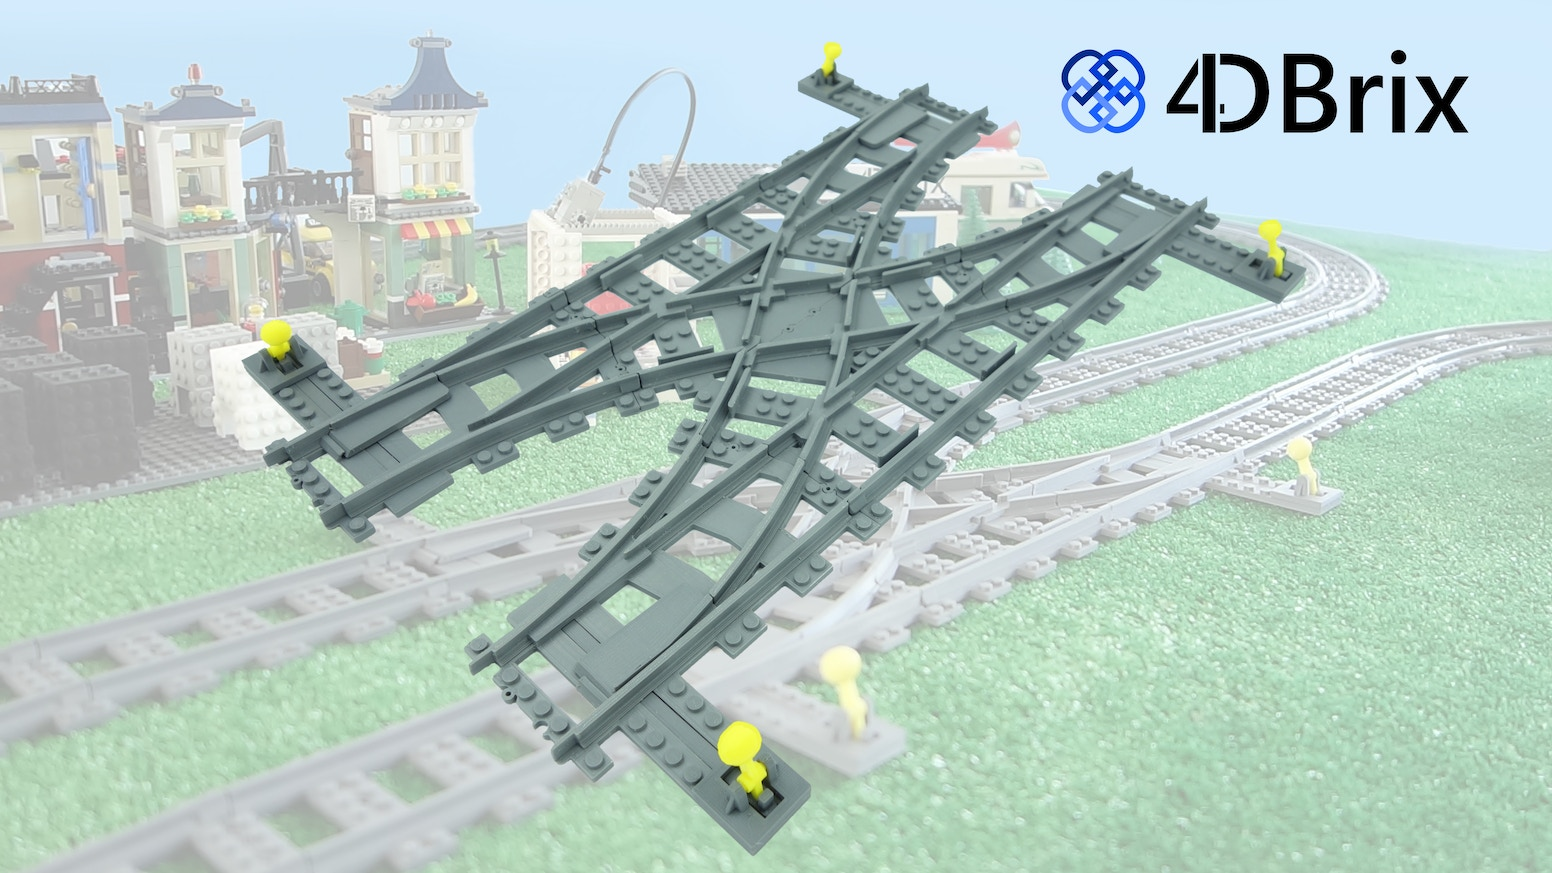 System of 3D printed LEGO compatible track parts which can be assembled in different ways to create manual or motorized combinations